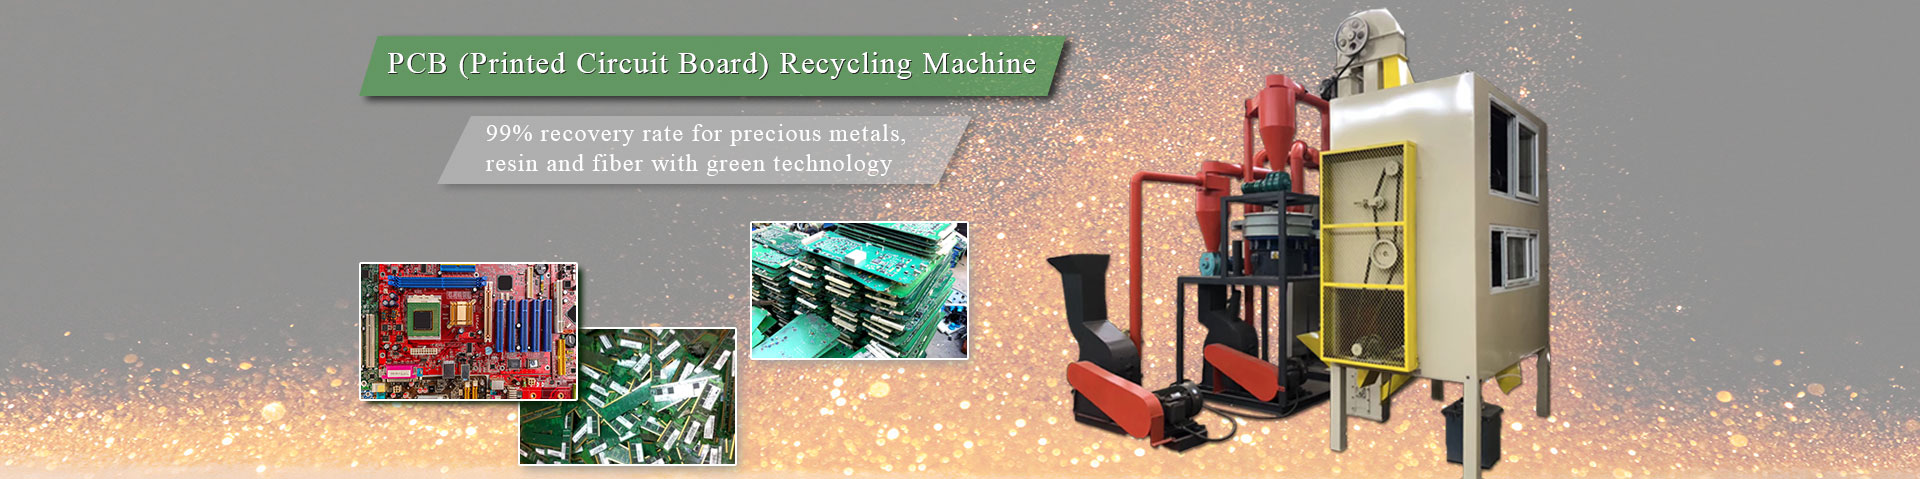 PCB board recycling machine